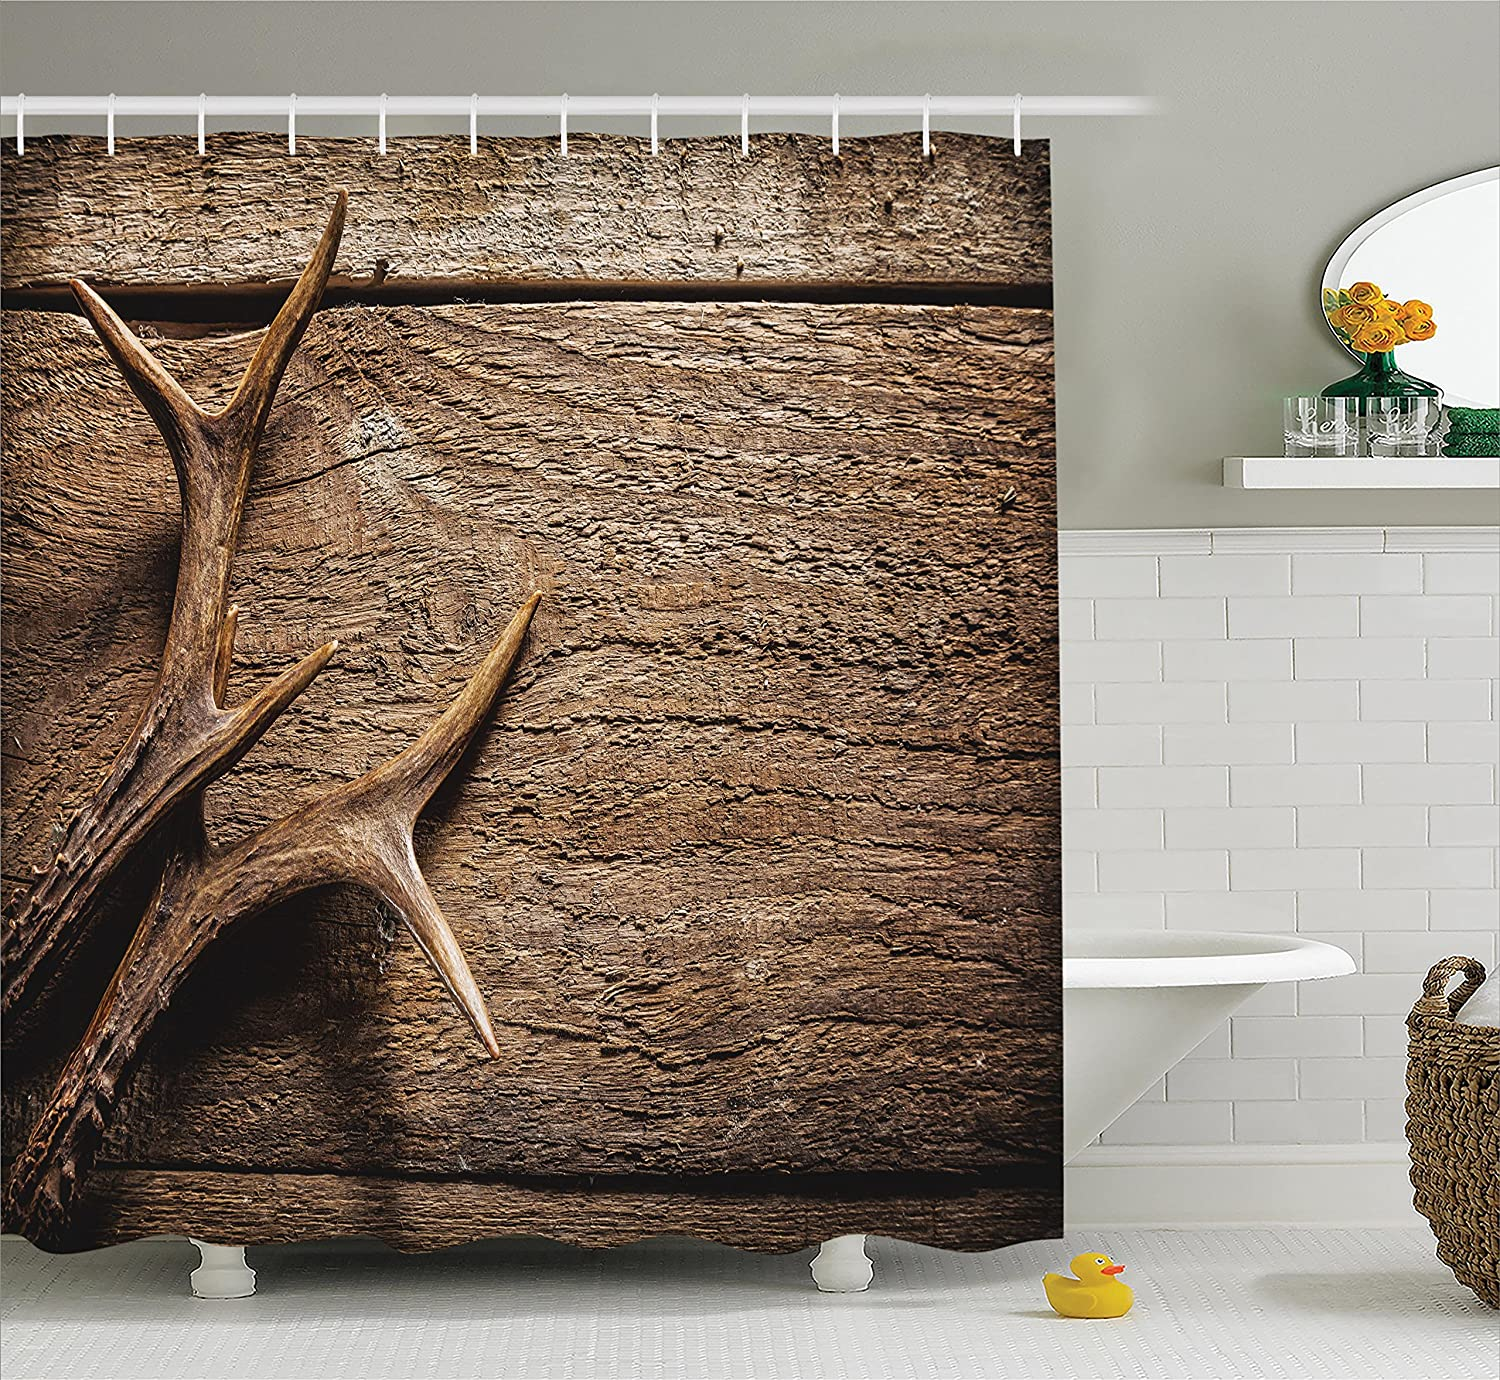 Shower curtain deer antler decor bathroom rustic extra for Hunting bathroom decor